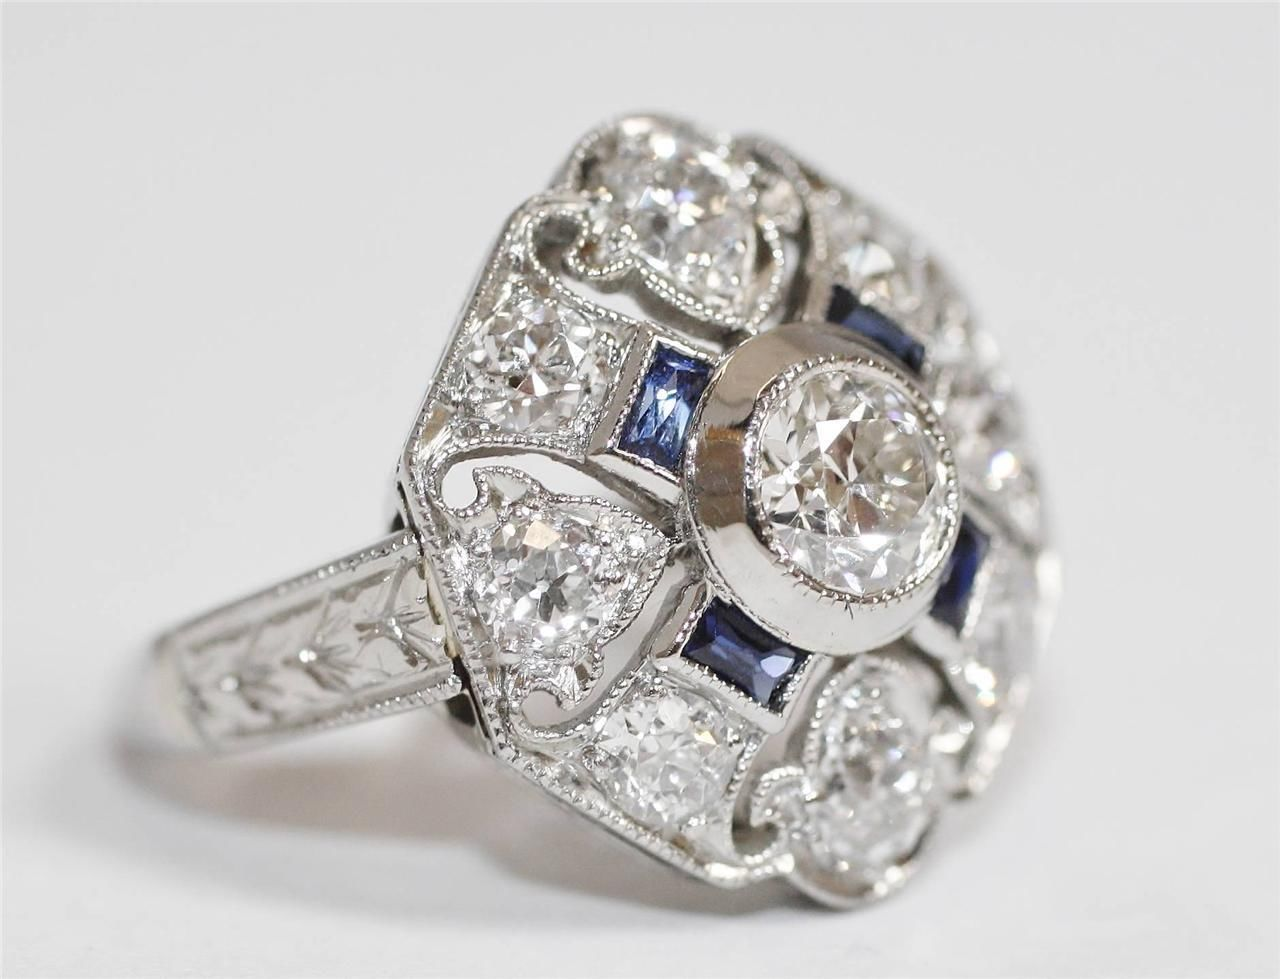 Diamond Estate Jewelry Ers The Best Photo